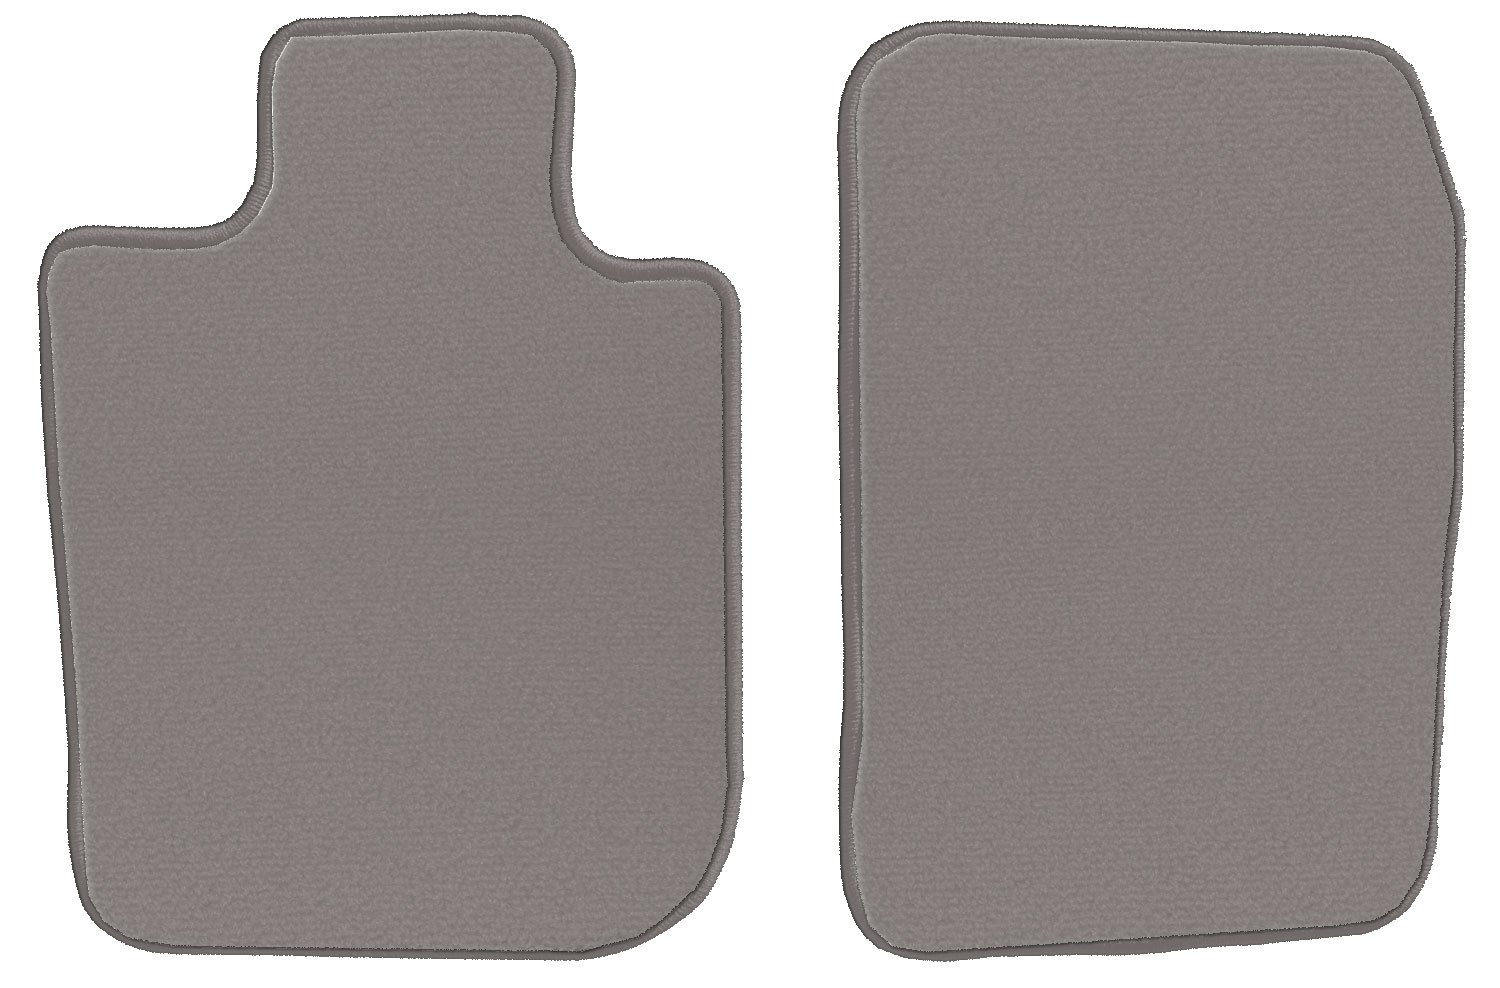 GGBAILEY D3373A-F1A-GY-LP Custom Fit Automotive Carpet Floor Mats for 1988 1989 Toyota 4Runner Grey Loop Driver /& Passenger